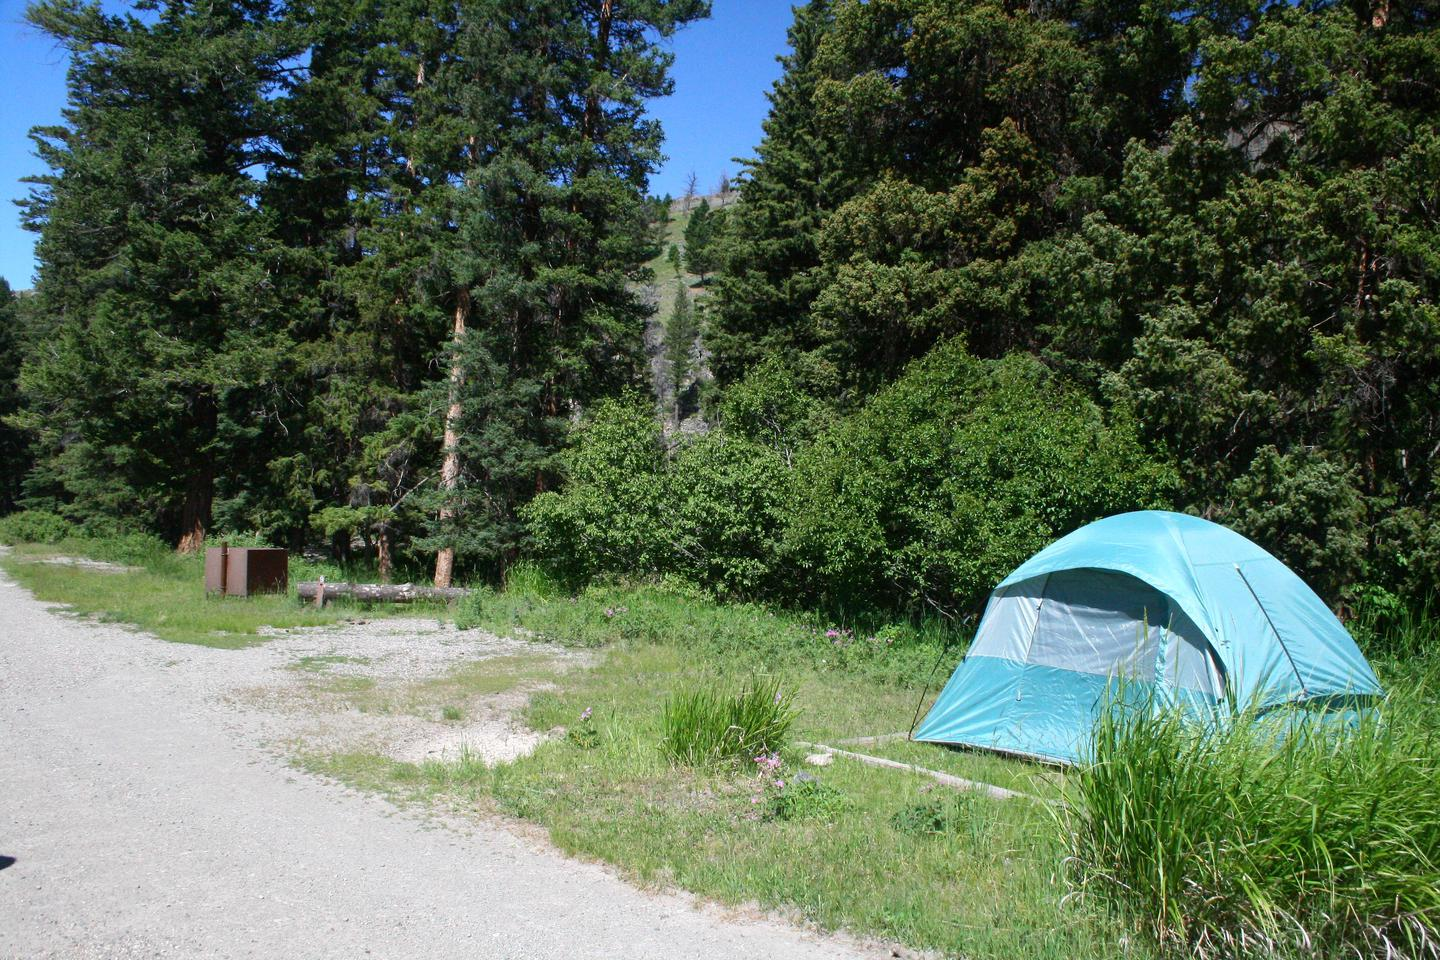 Slough Creek Campground site #9.Slough Creek Campground site #9